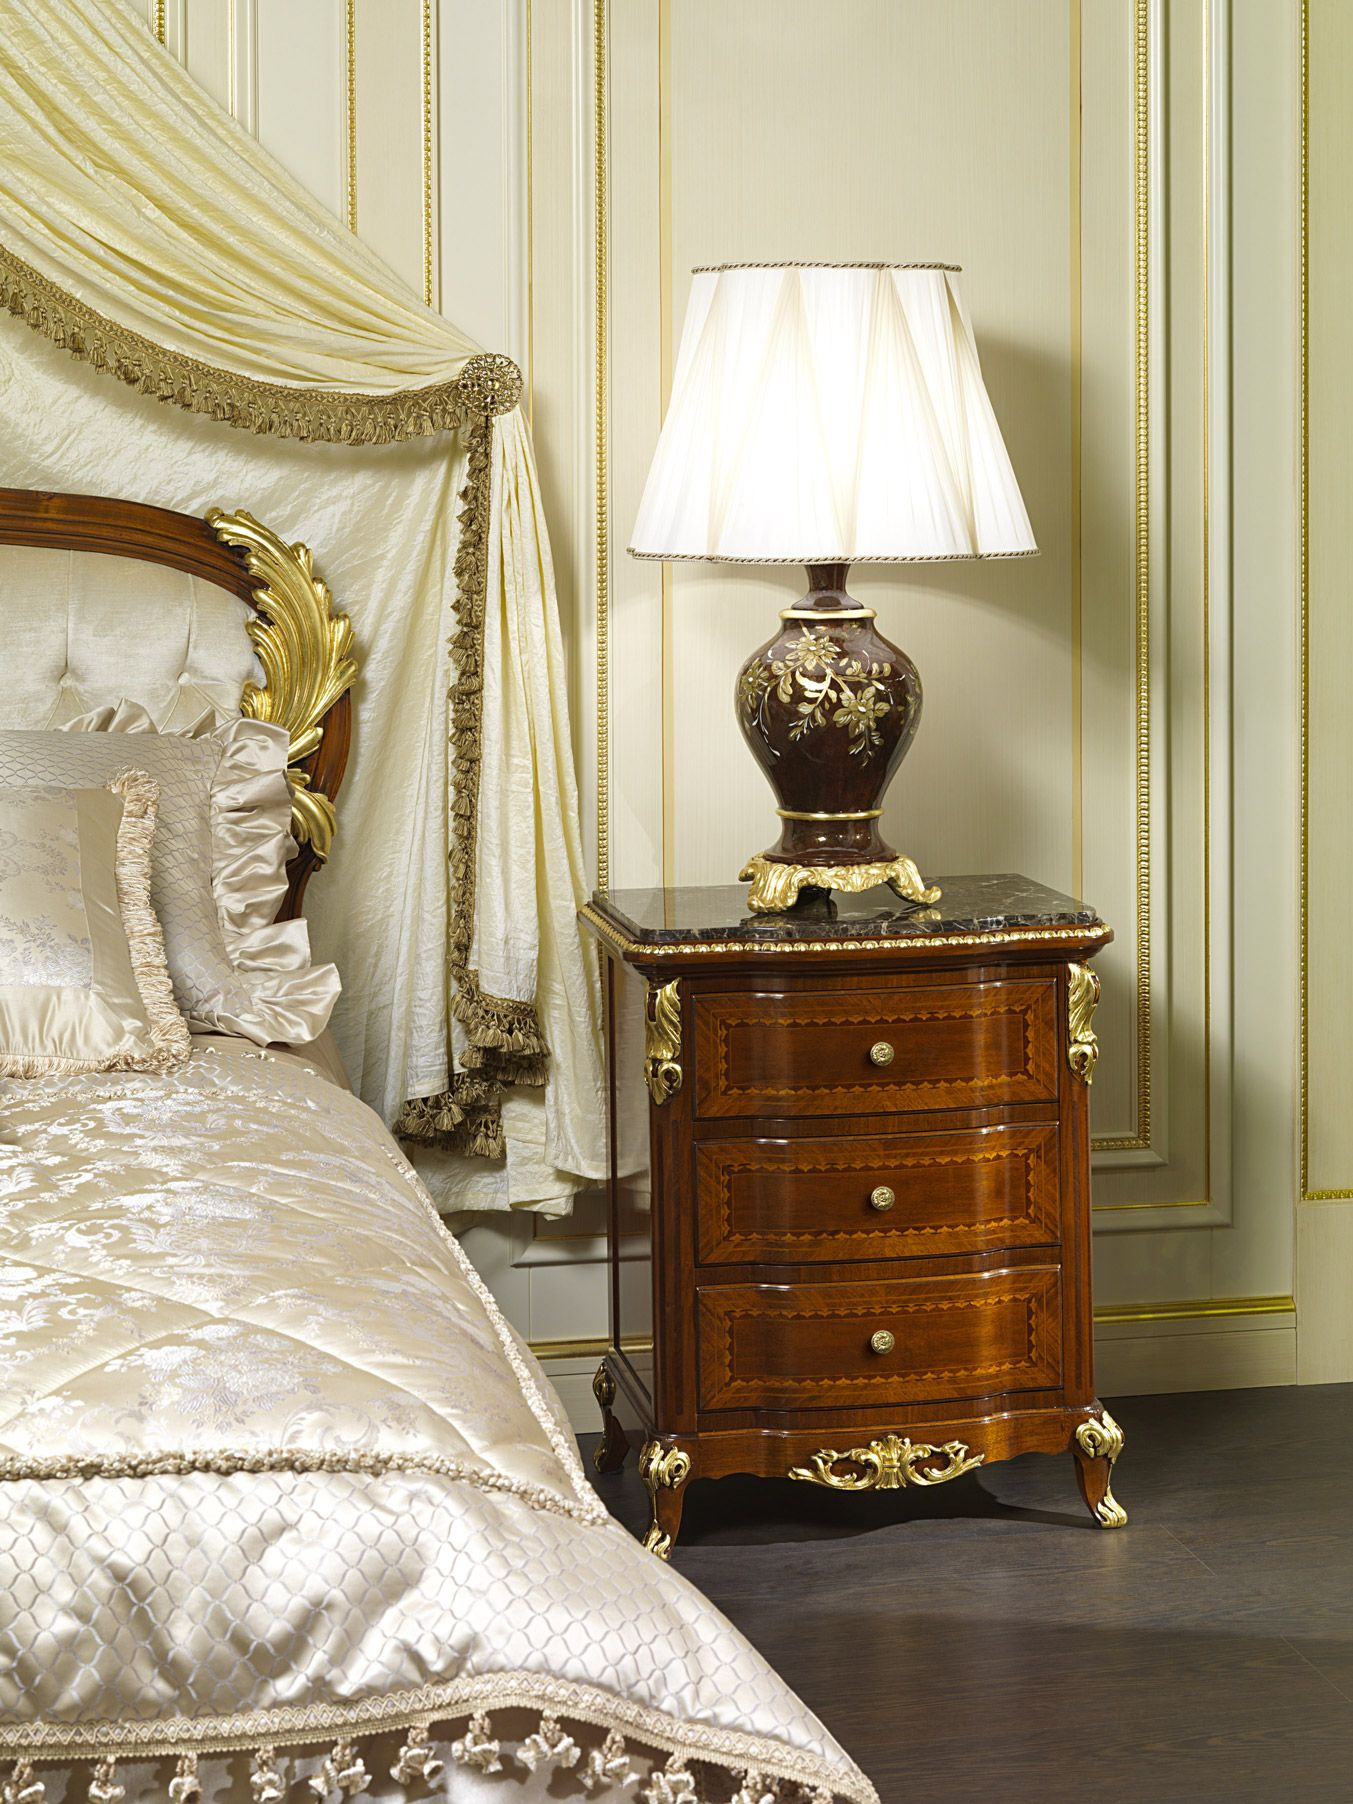 Classic bedside table - Classic Bedside Table Luxury Collection Louis Xv Of France Of The Artisan